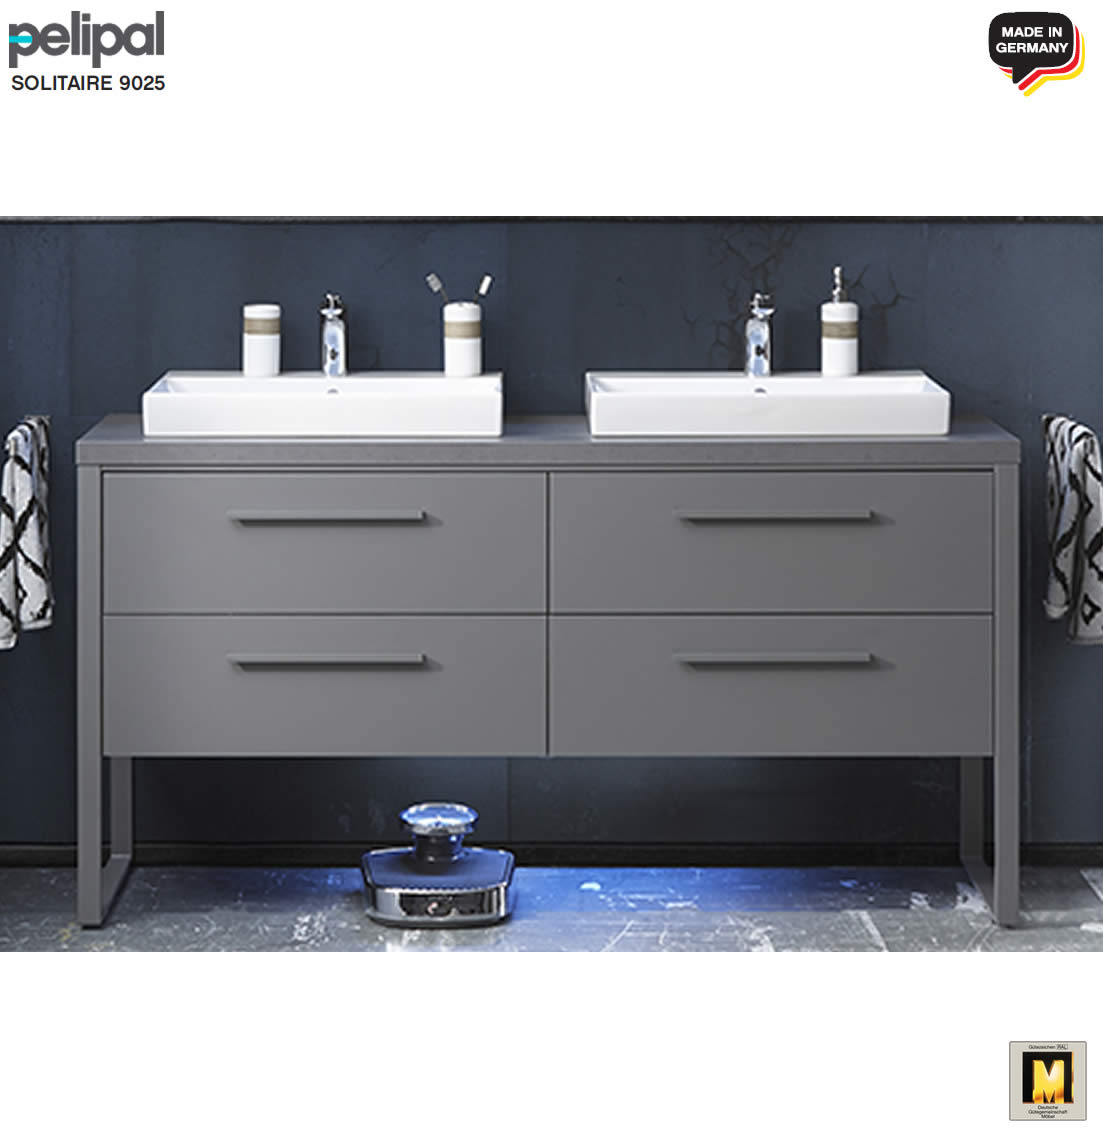 pelipal solitaire 9025 waschtisch set 160 cm keramik aufsatz waschtisch unterschrank 4. Black Bedroom Furniture Sets. Home Design Ideas